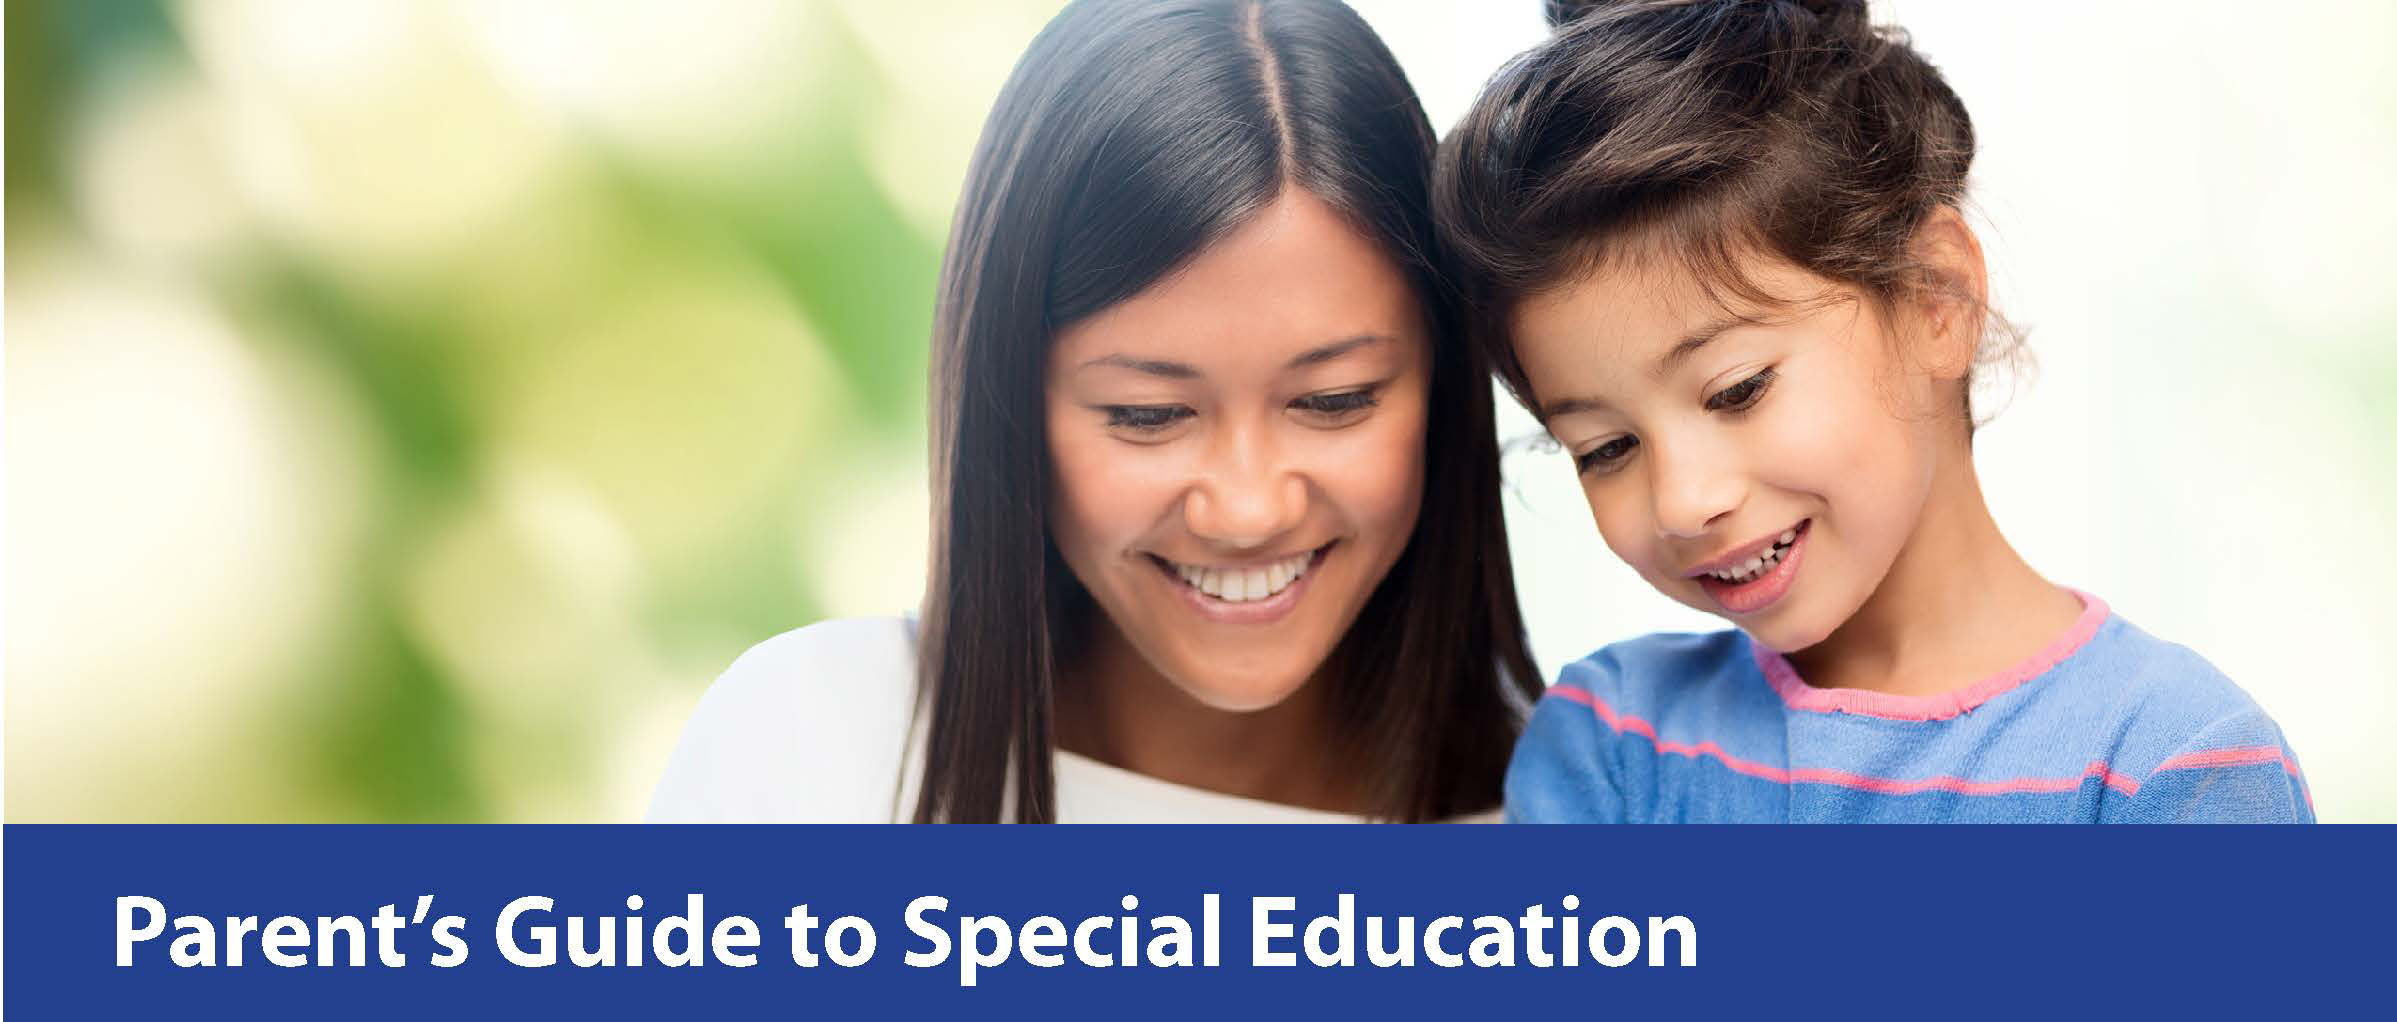 picture of a mother and child looking down at a book and smiling with the words Parent's Guide to Special Education underneath.